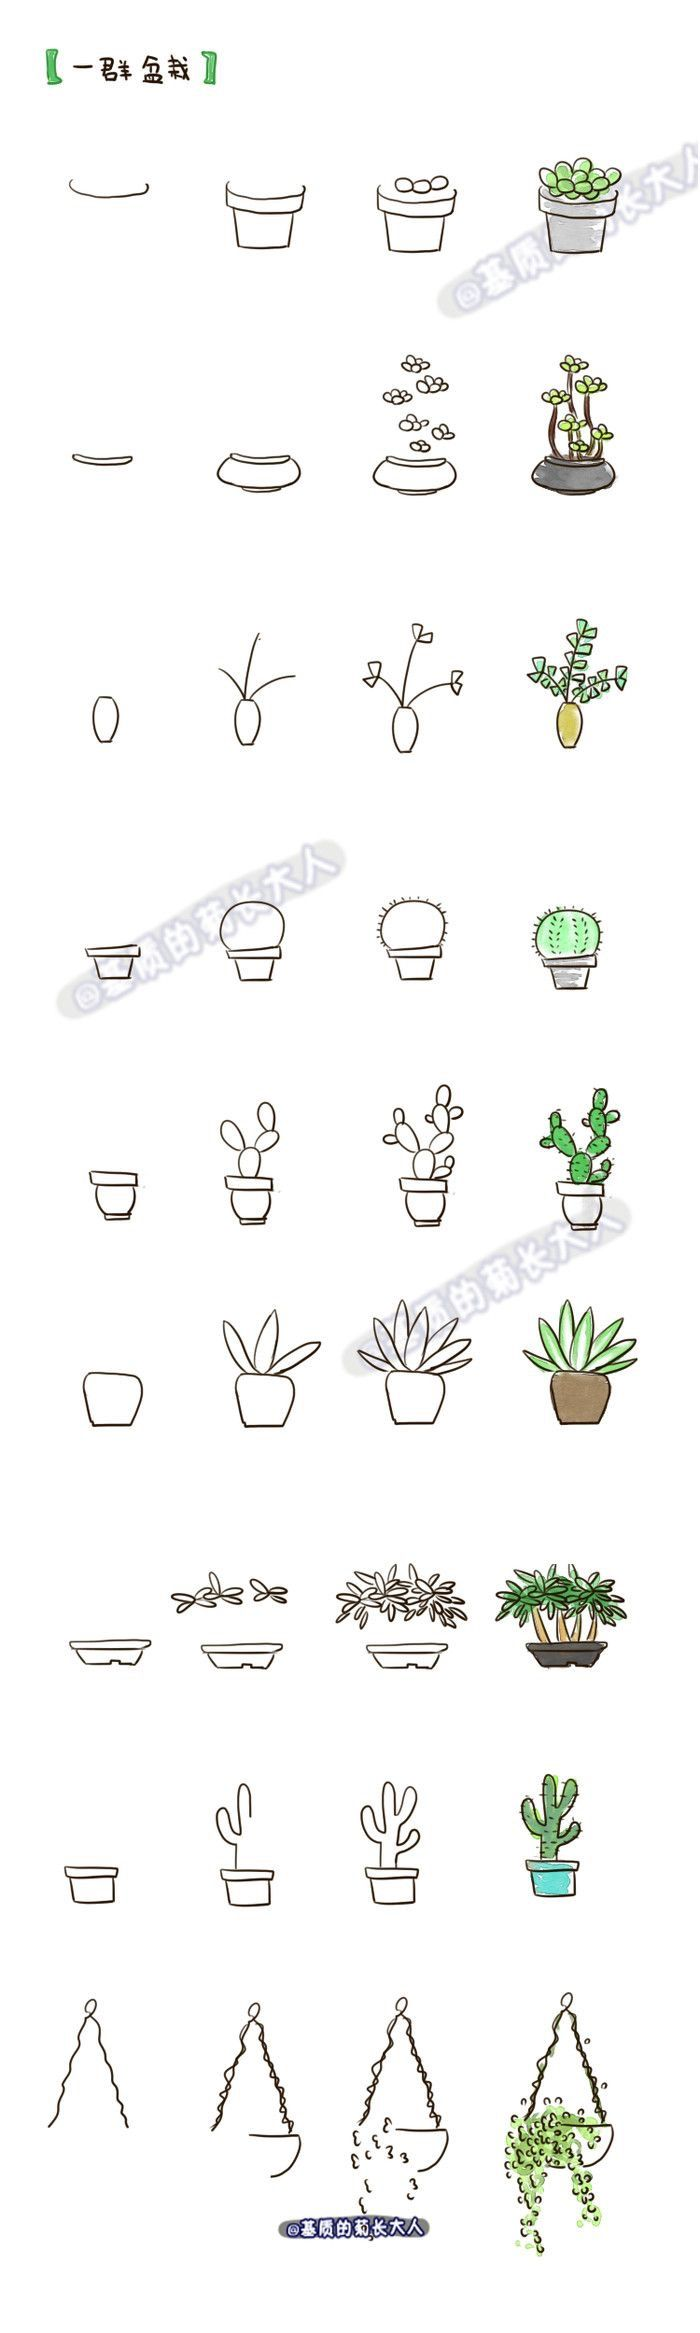 how to draw a cactus plant step by step